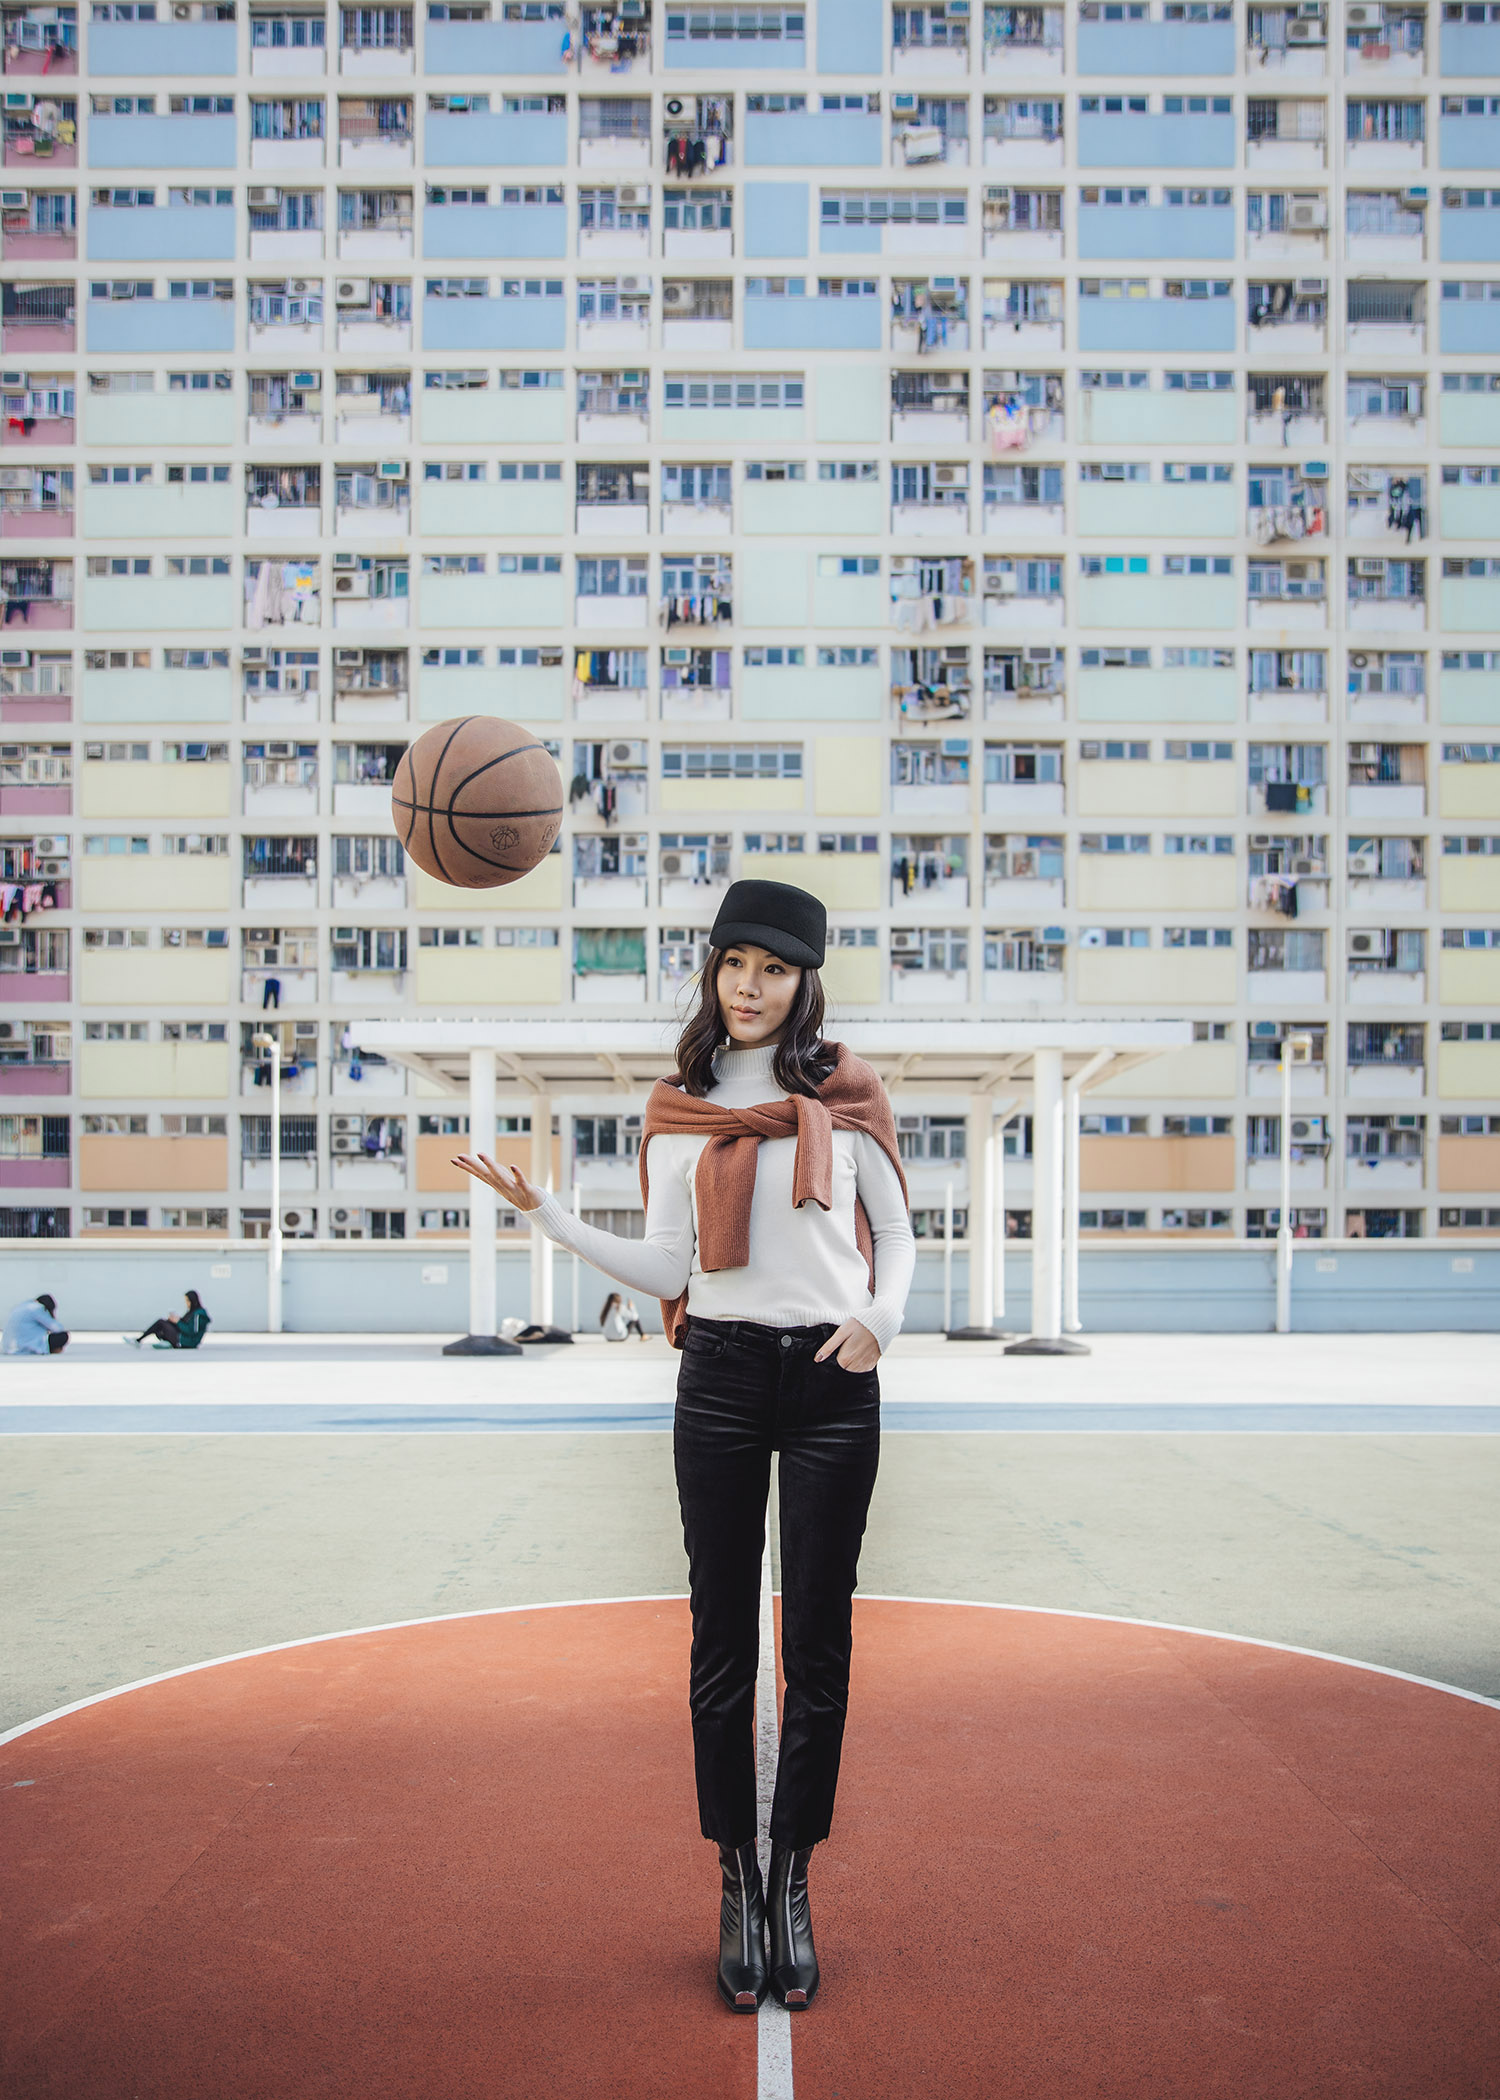 choi hung estate 彩虹川  Jenny Tsang of Tsangtastic  in Hong Kong must see instagram spots